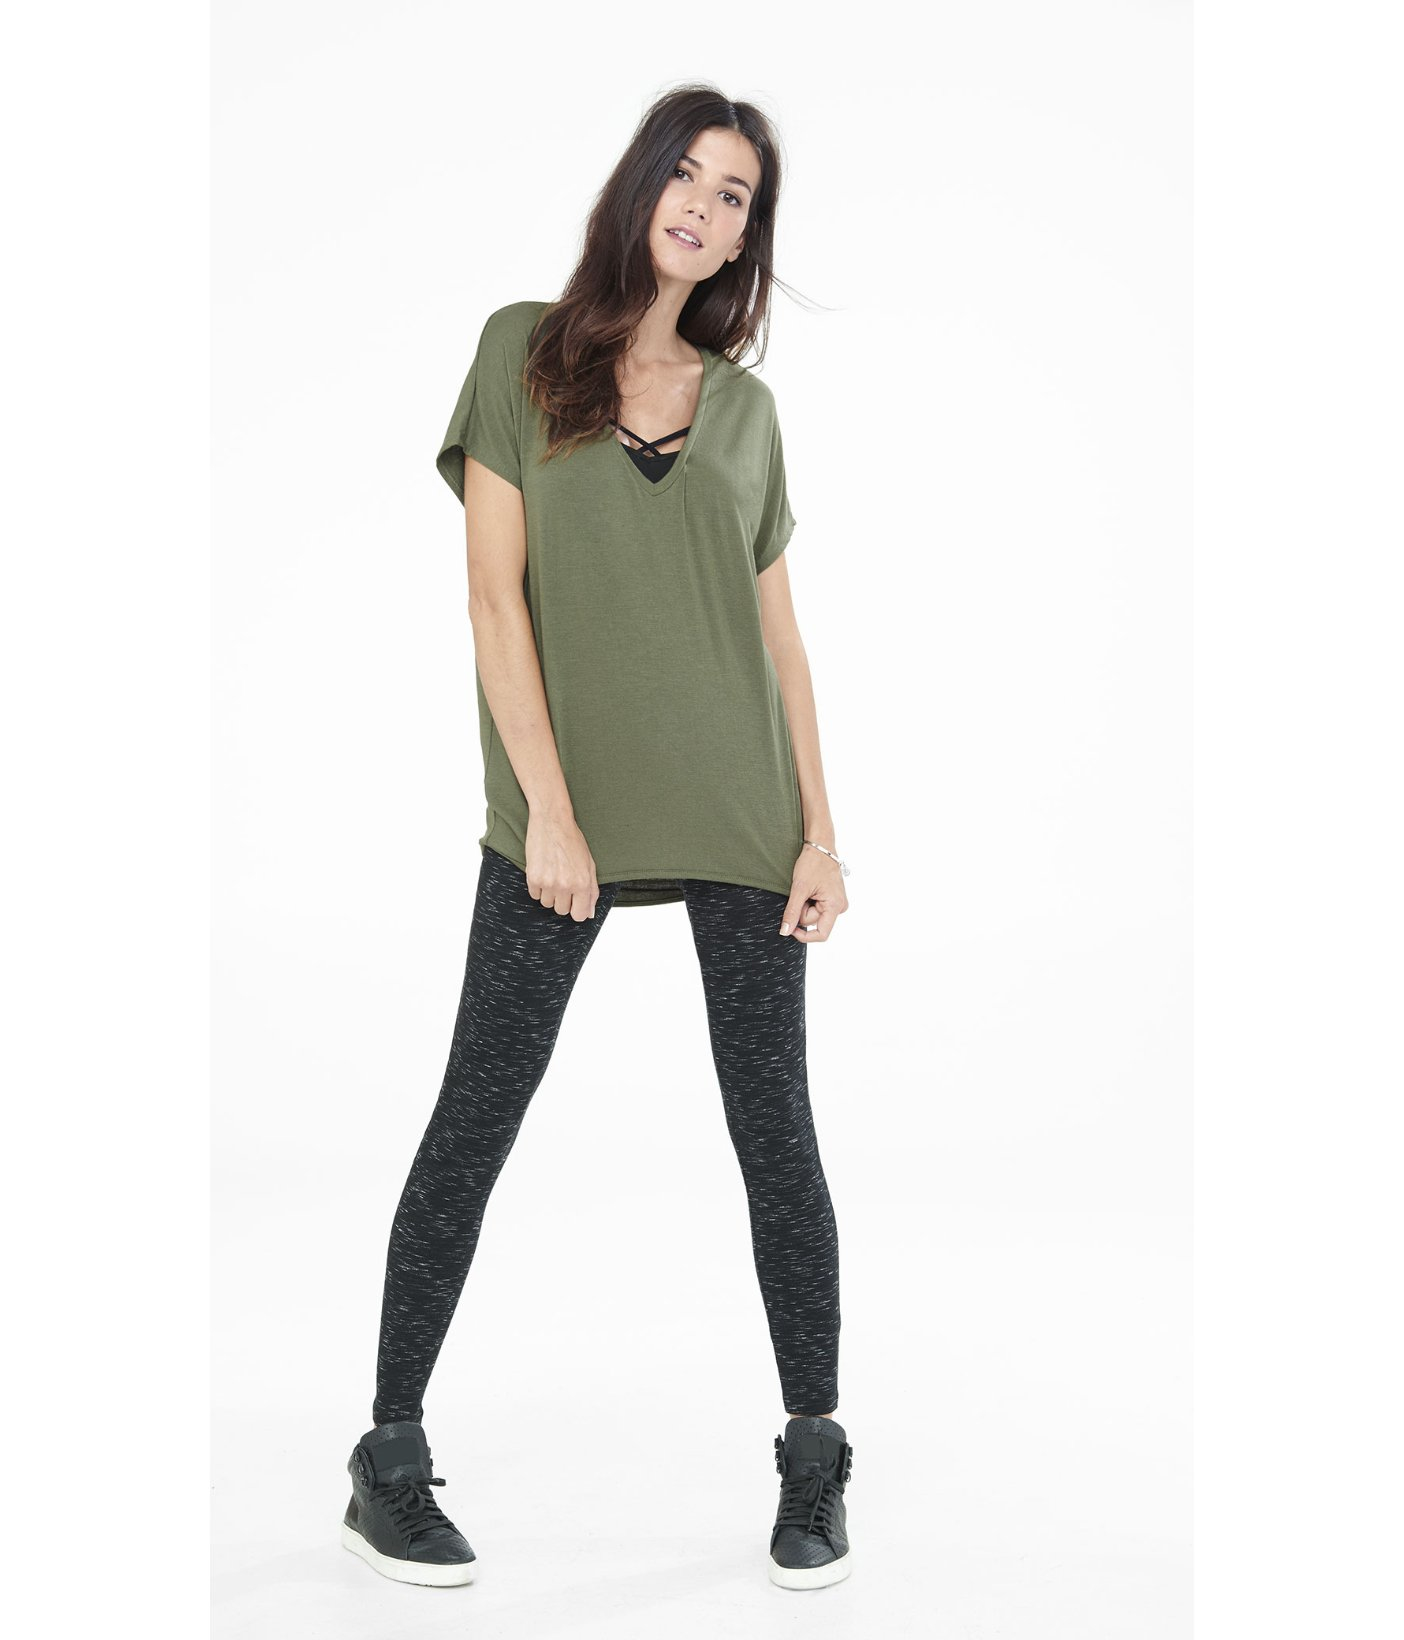 09aa84727b4ea8 Lyst - Express One Eleven Short Sleeve V-neck Tunic Tee in Green